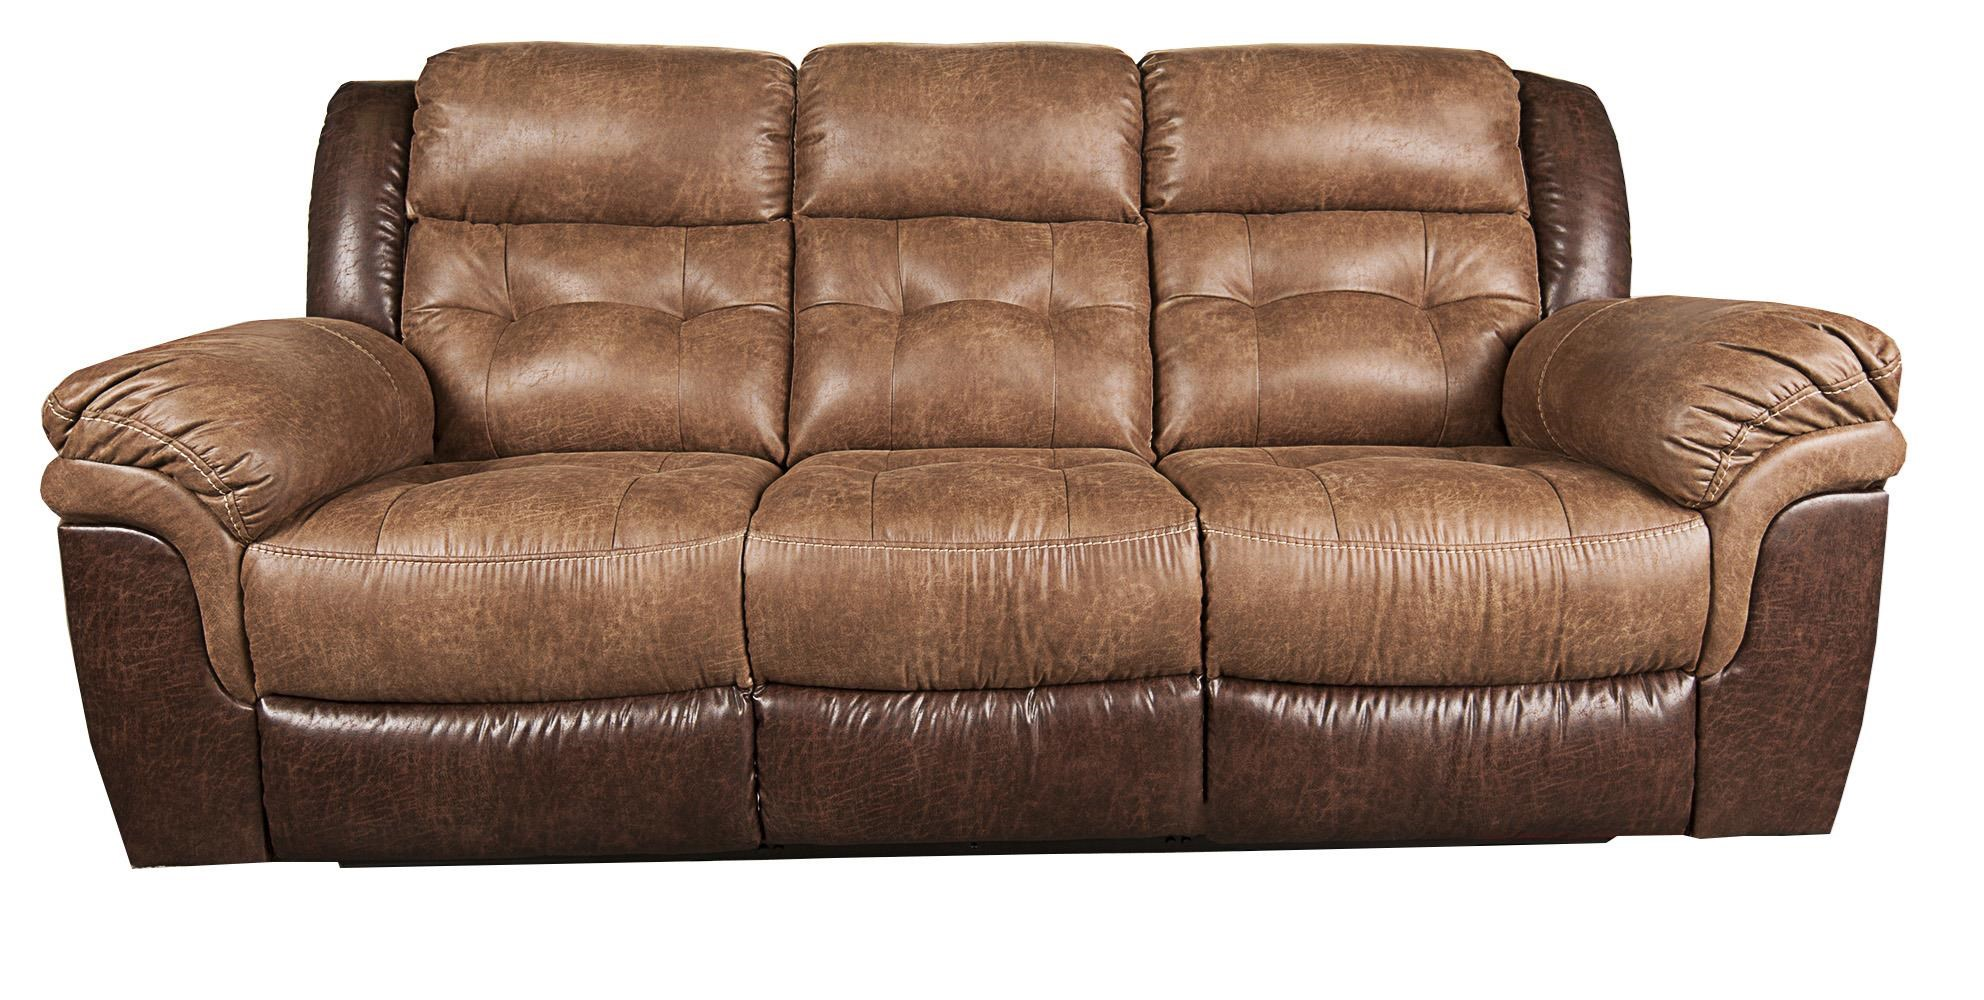 Montrell Montrell Reclining Sofa at Morris Home